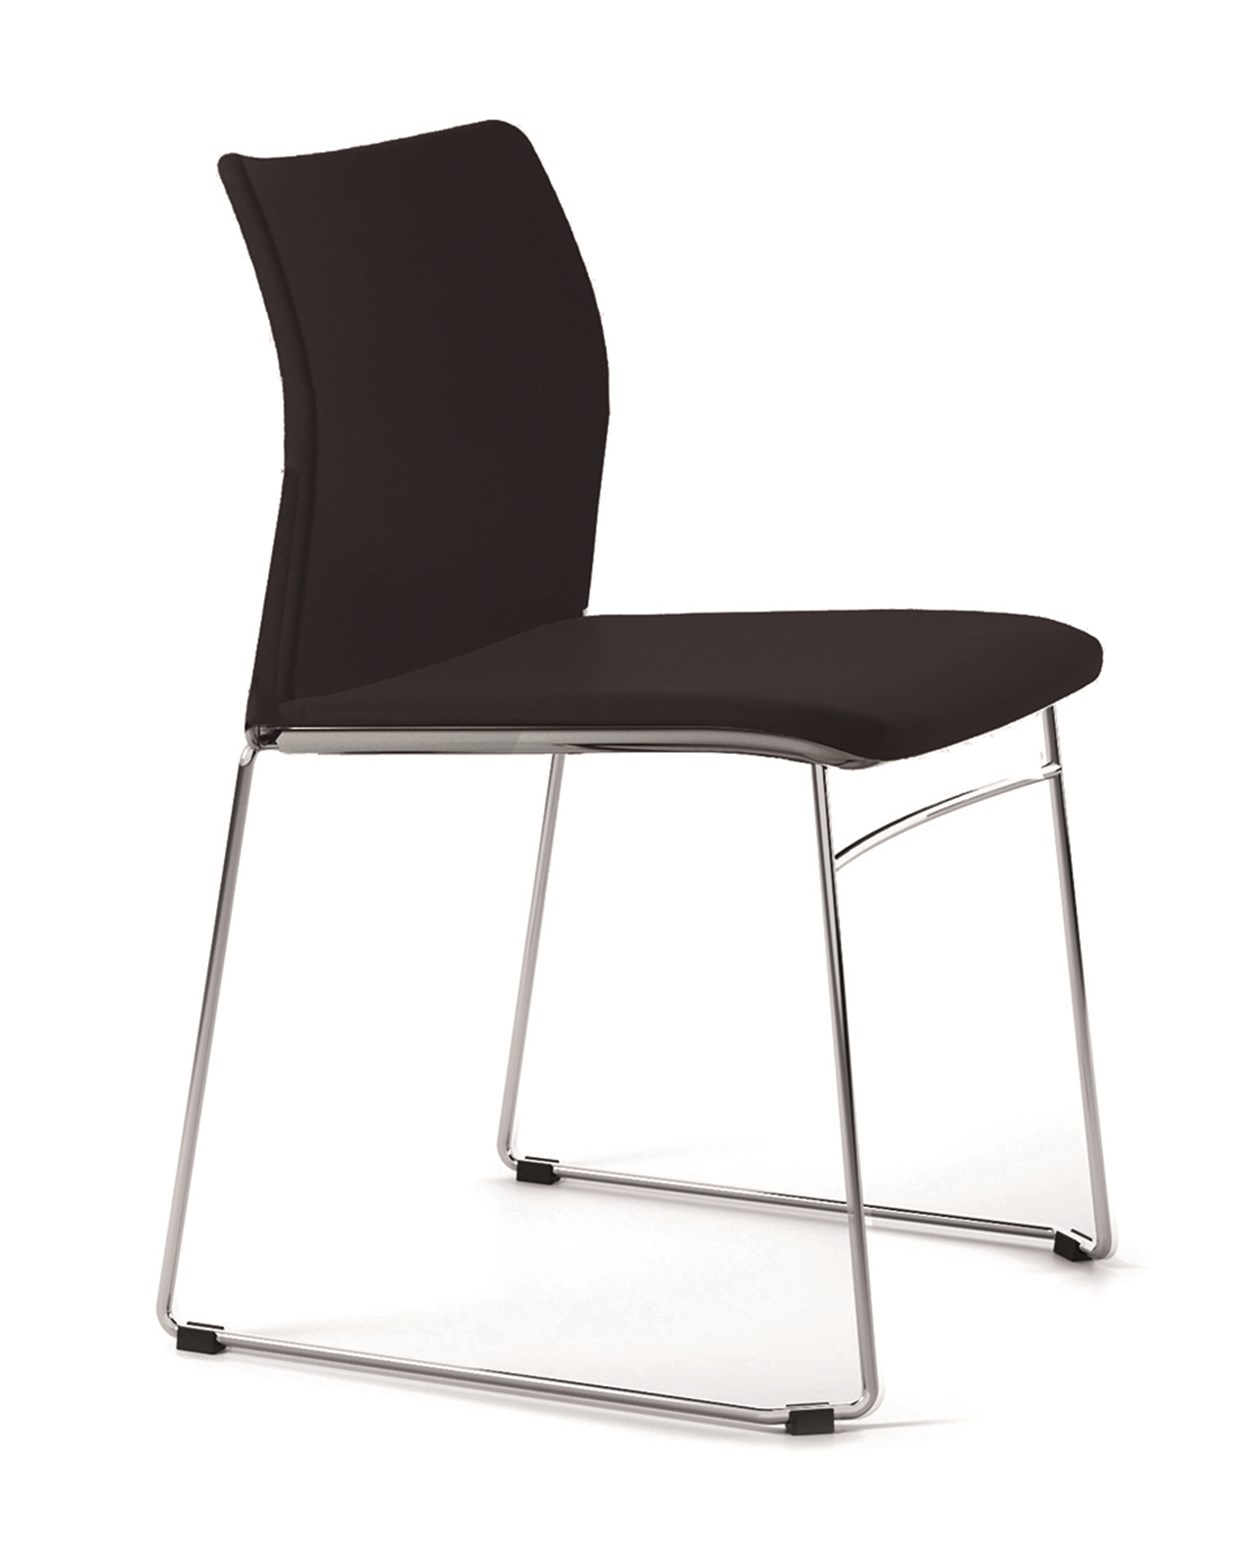 DELAOLIVA_SPACIO_CHAIR2.jpg